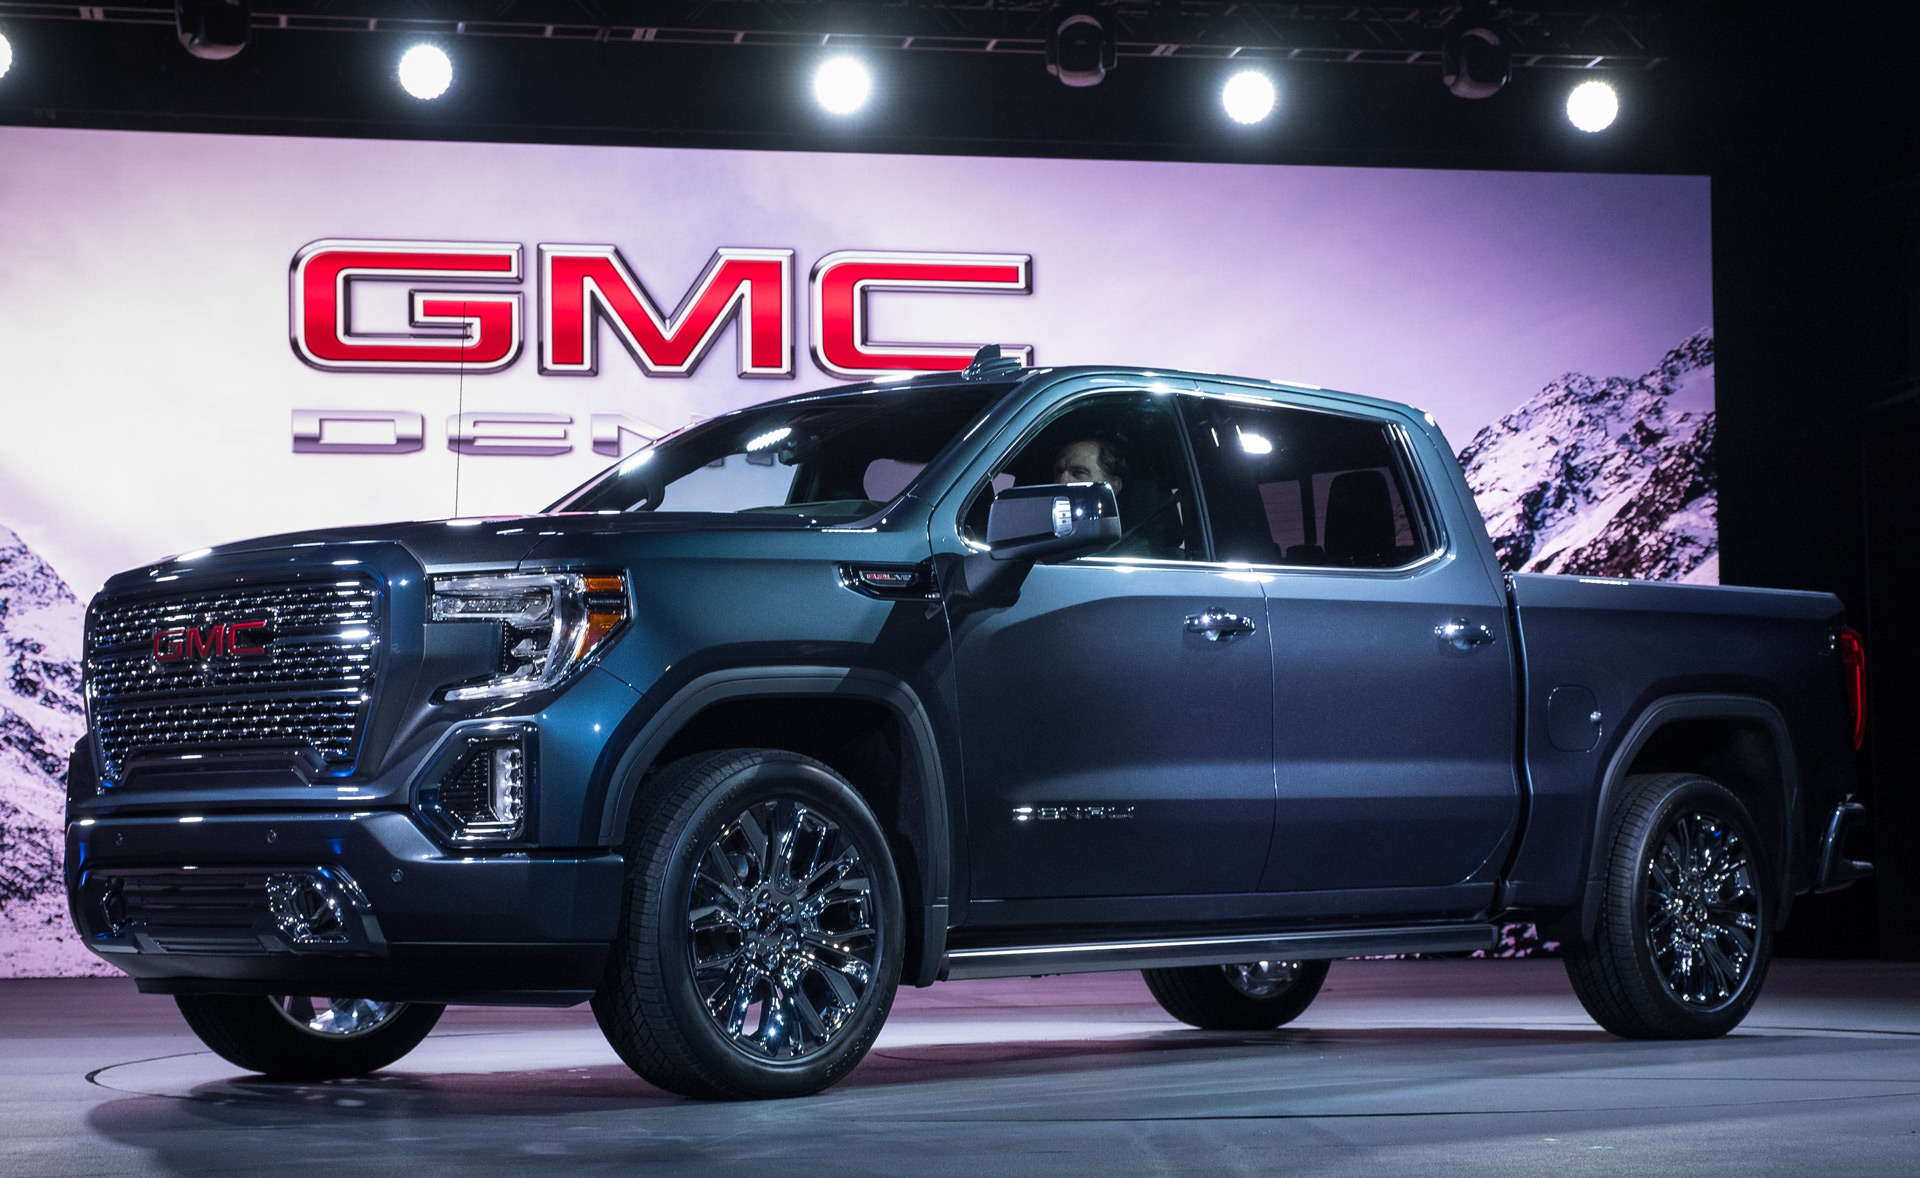 81 All New 2019 GMC Sierra Hd Model